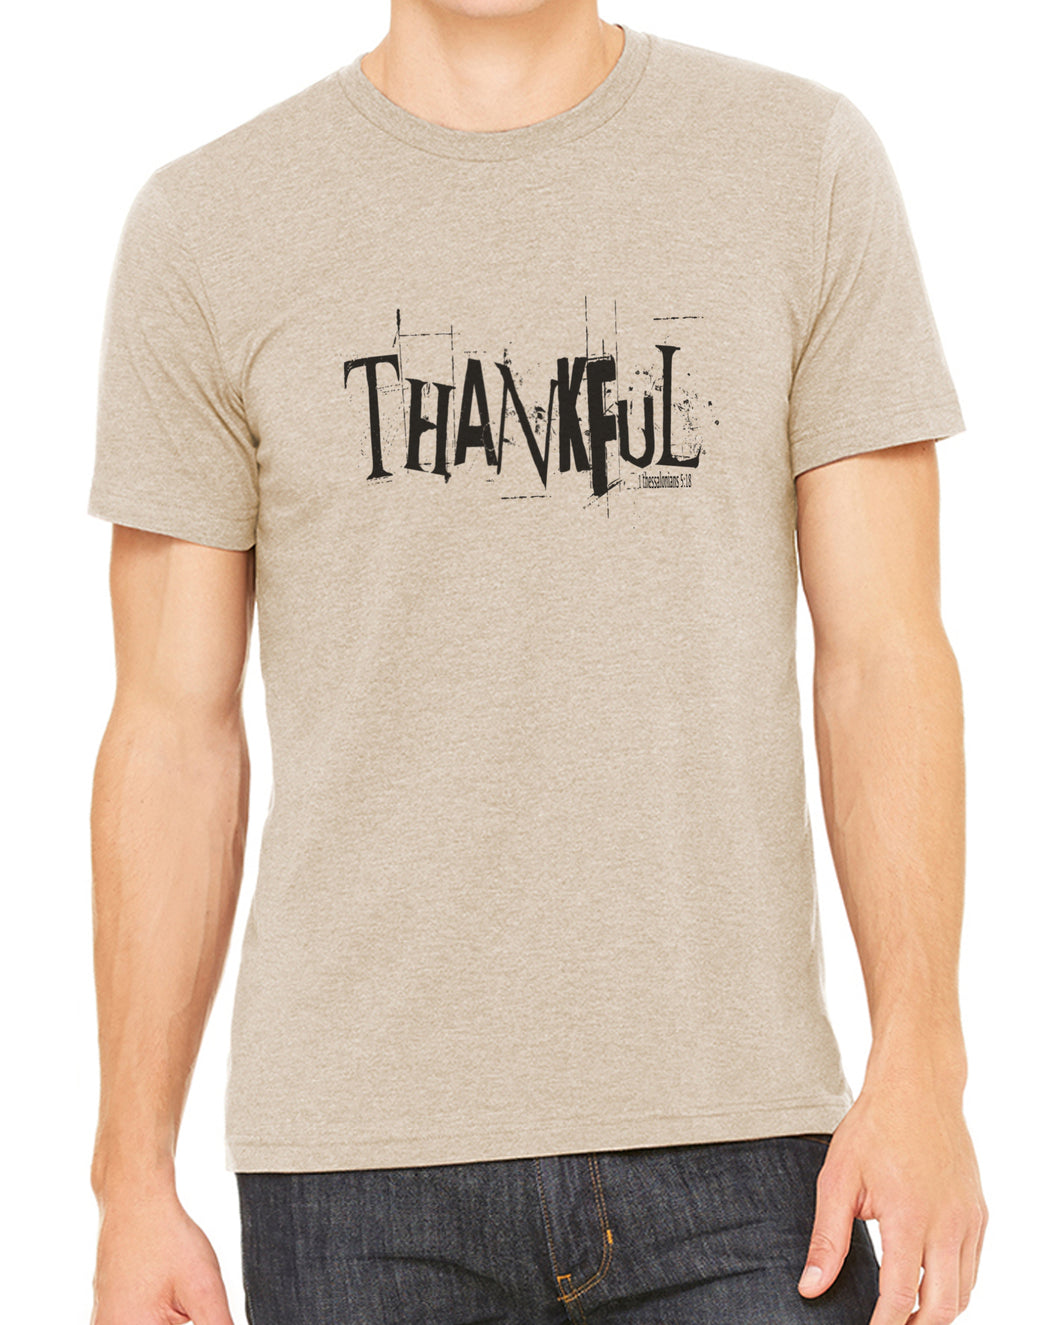 Thankful (Unisex T-shirt) in 5 colors